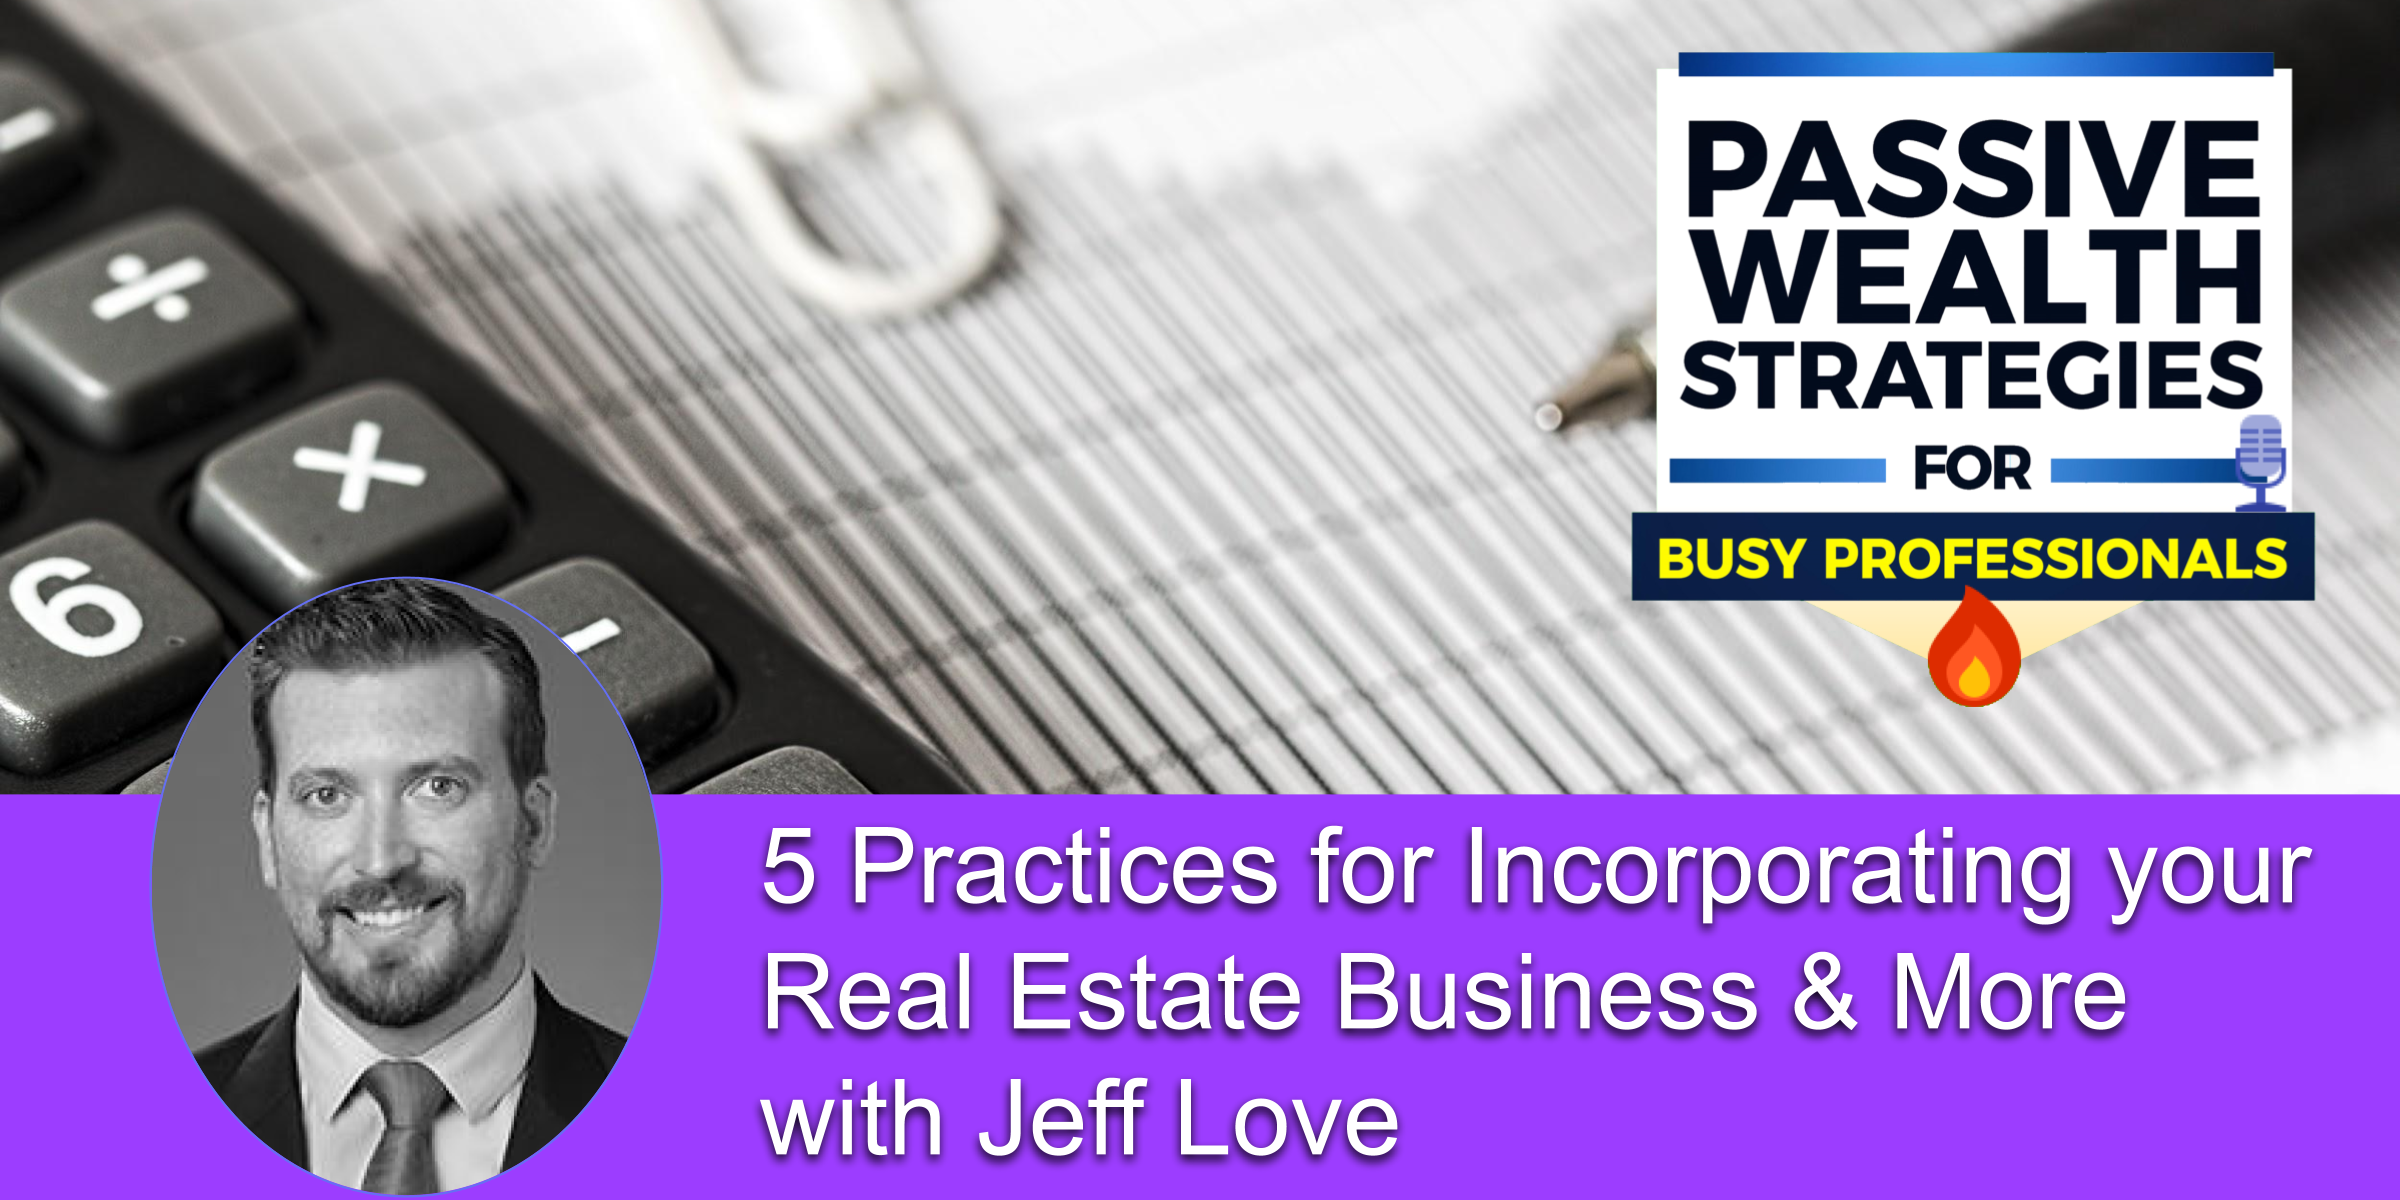 5 Practices for Incorporating your Real Estate Business More with Jeff Love